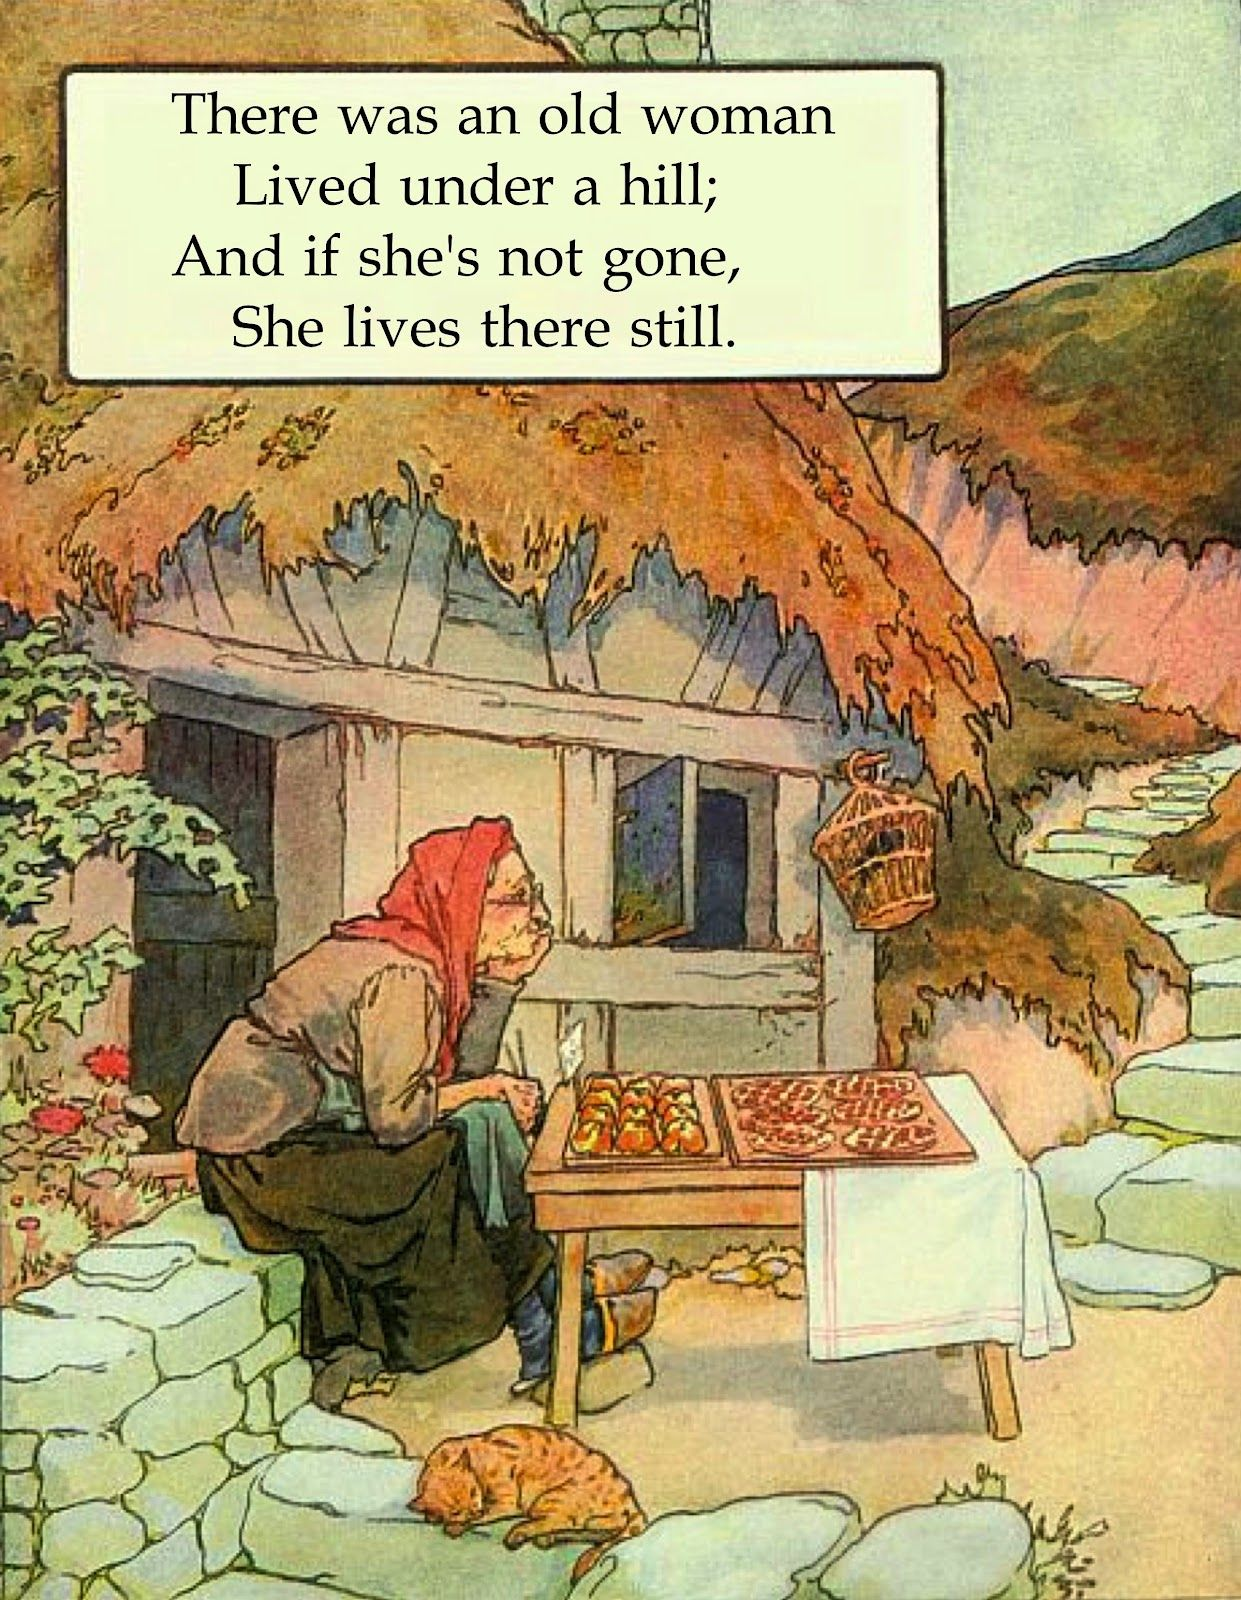 There was an Old Woman lived under a hill Nursery Rhyme ...